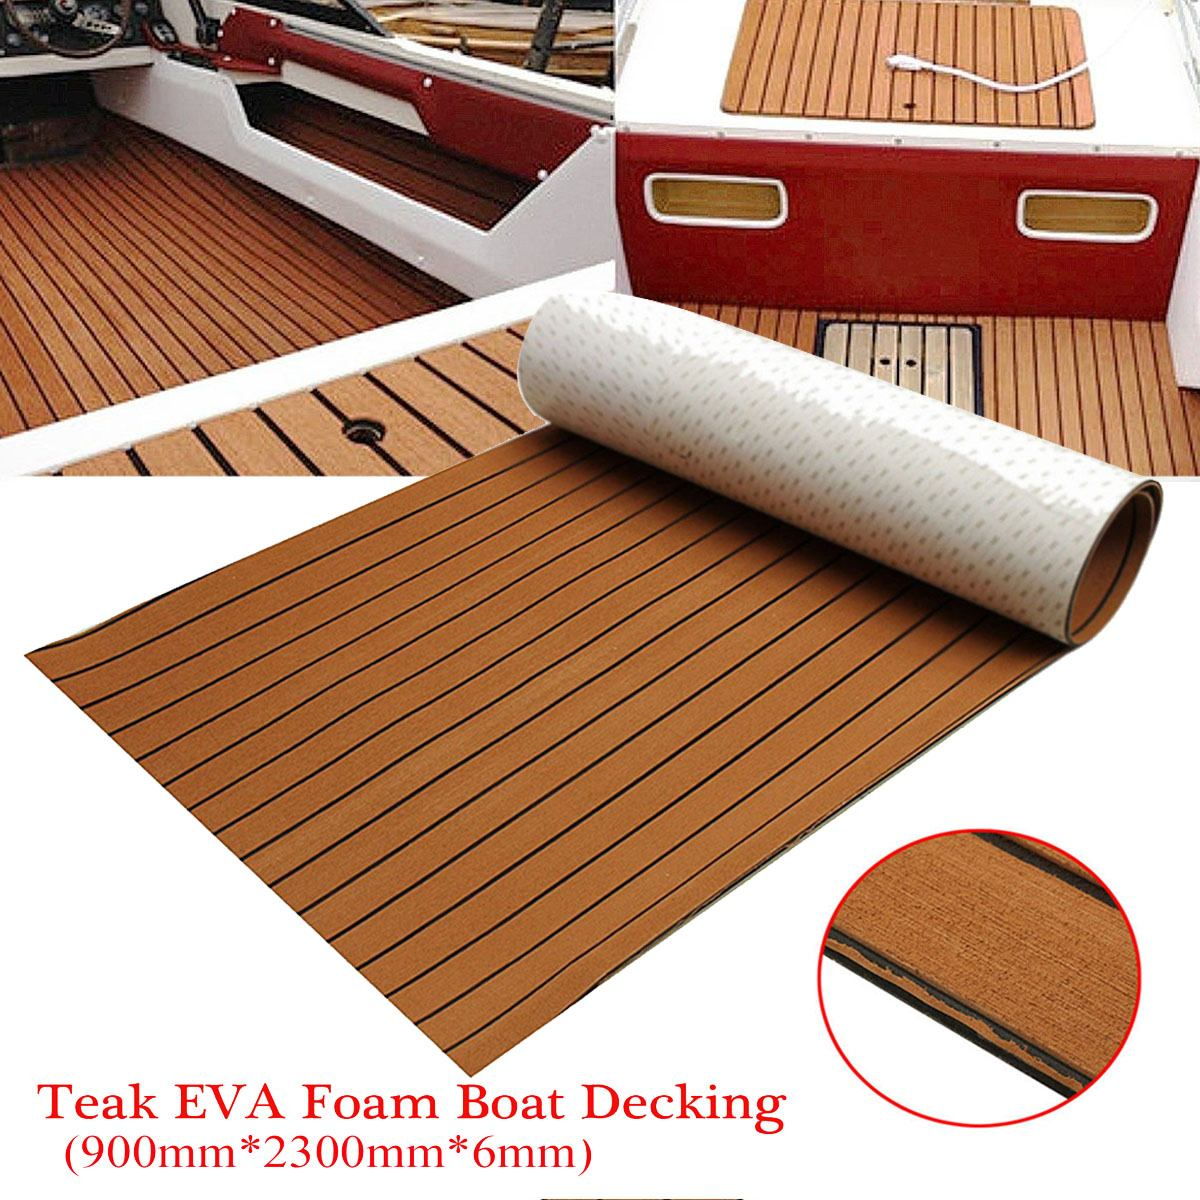 Self-Adhesive 900x2300x6mm EVA Foam Teak Brown With Black Line Faux Teak Boat Decking Sheet